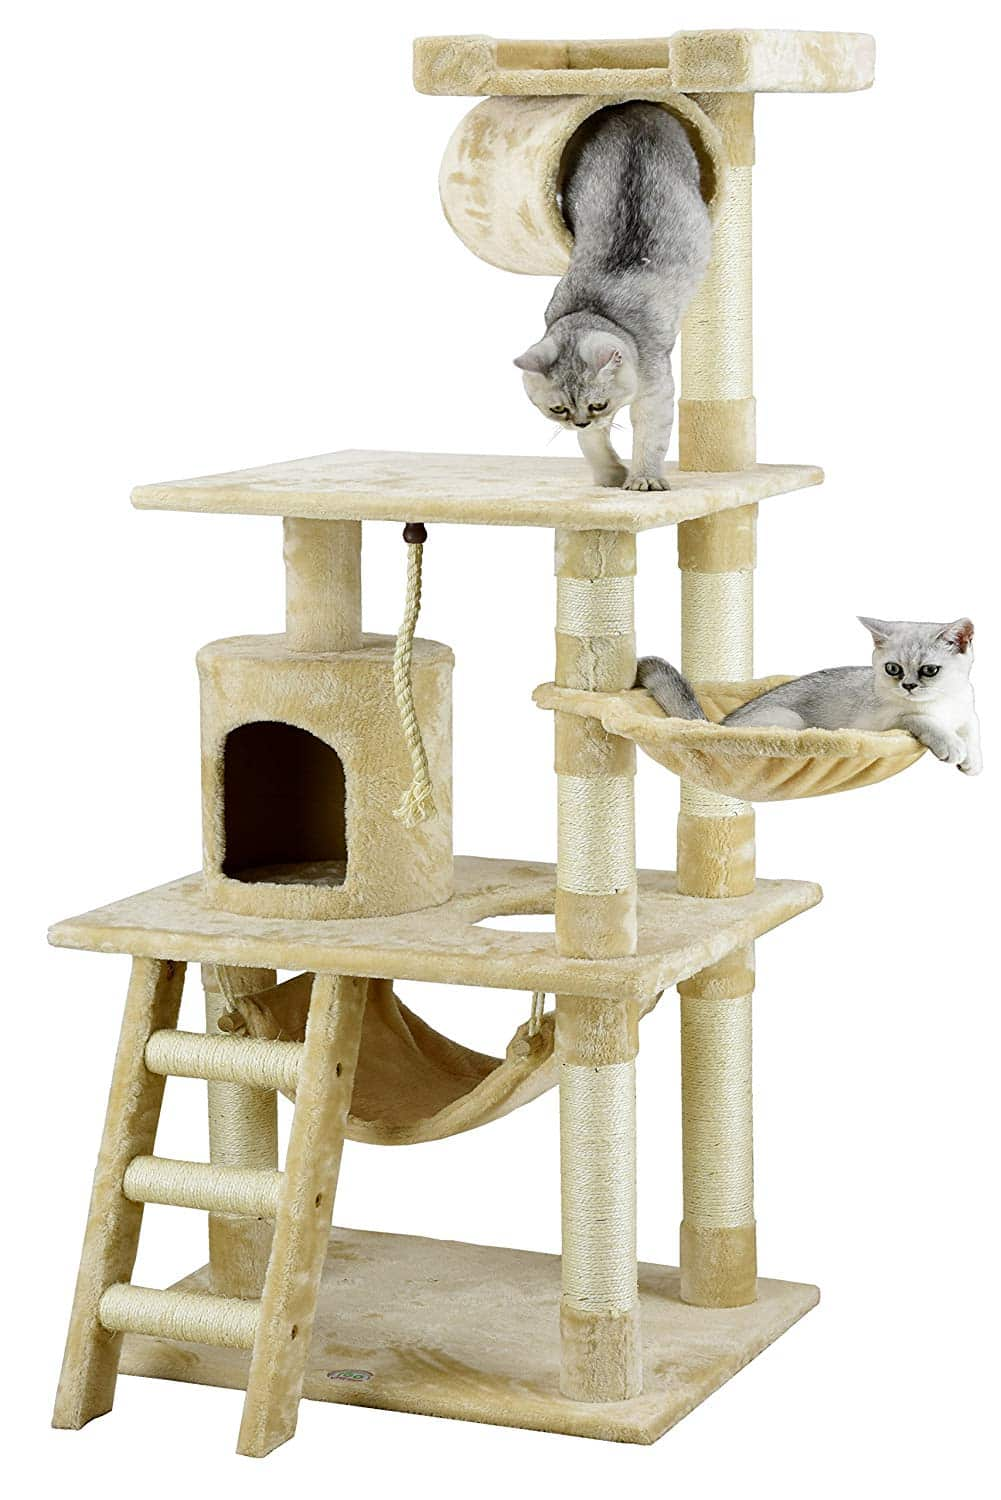 9. Go Pet Club 62-Inch Cat Tree